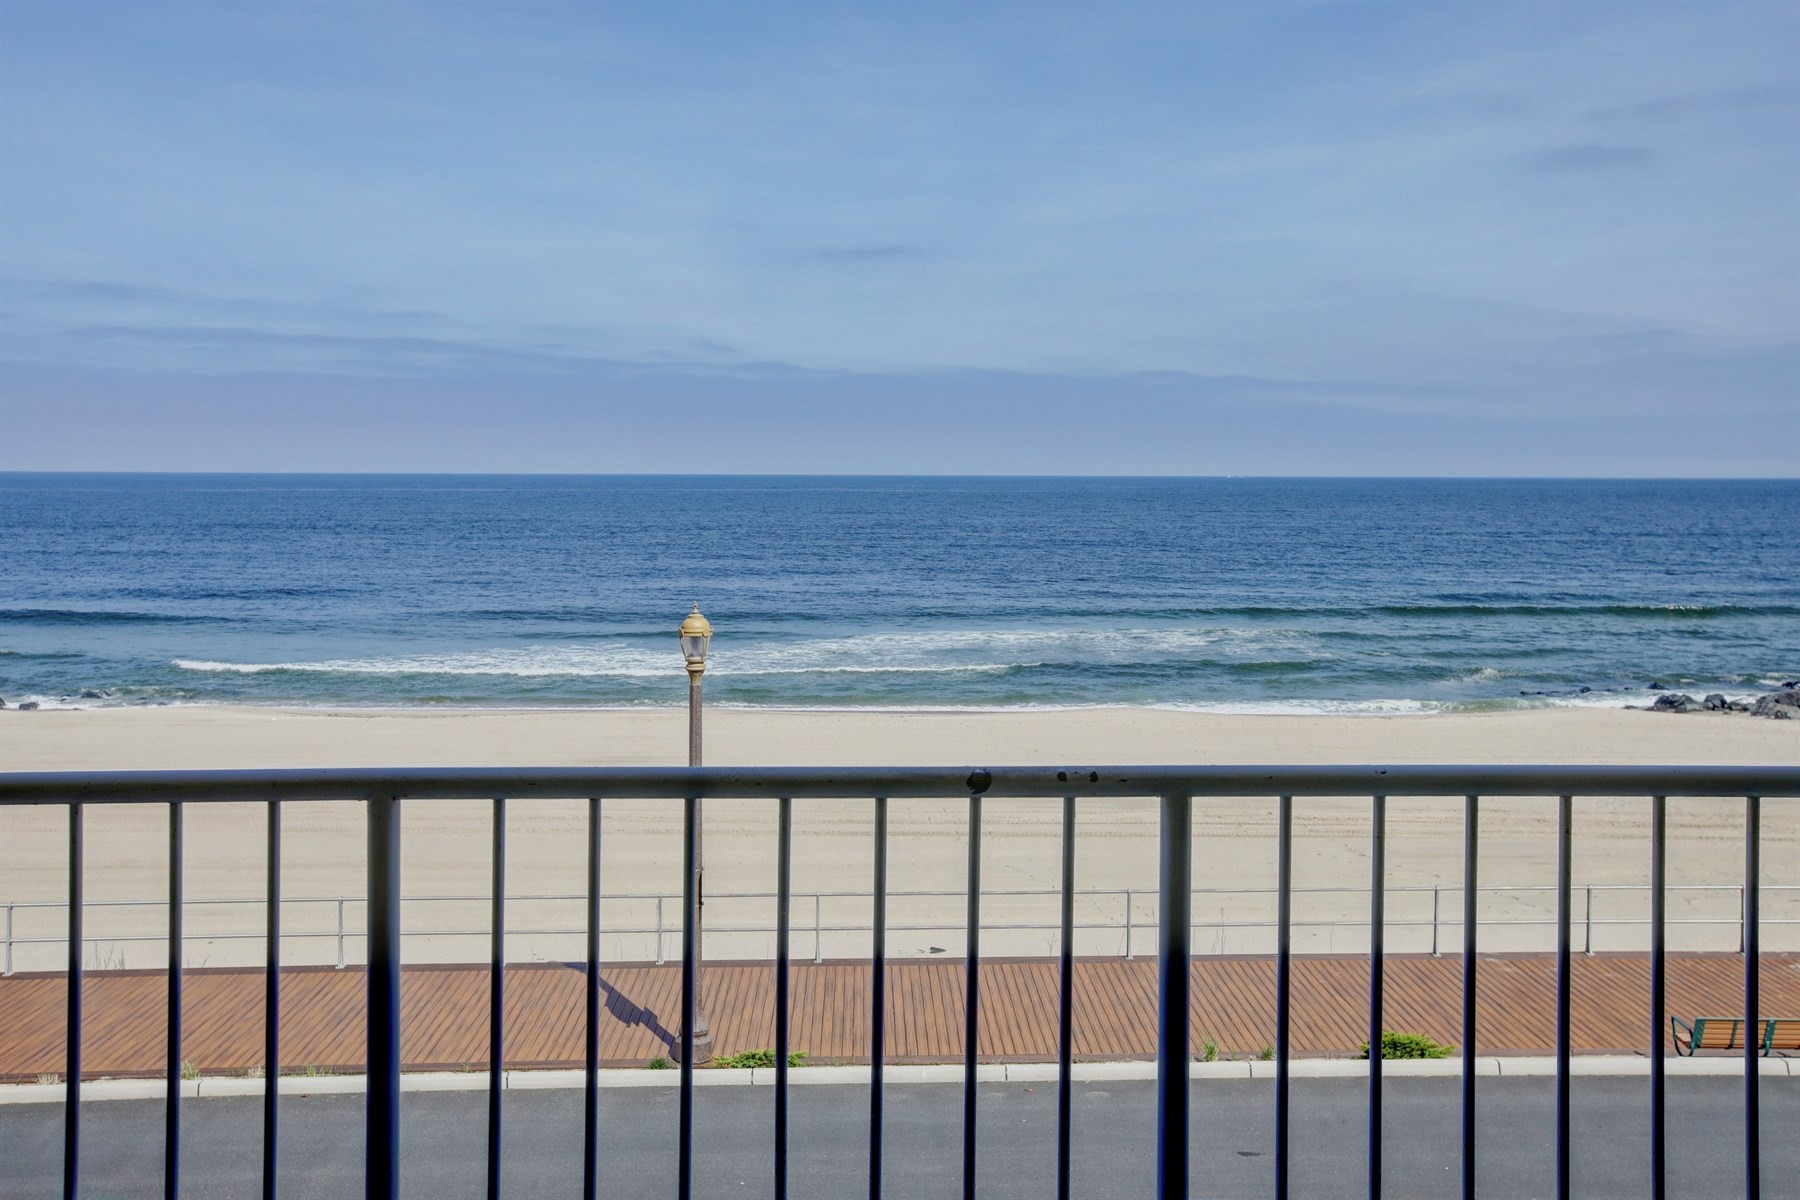 Condominium for Sale at Ocean view Towers 510 Ocean Avenue Unit 18, Long Branch, New Jersey 07740 United States